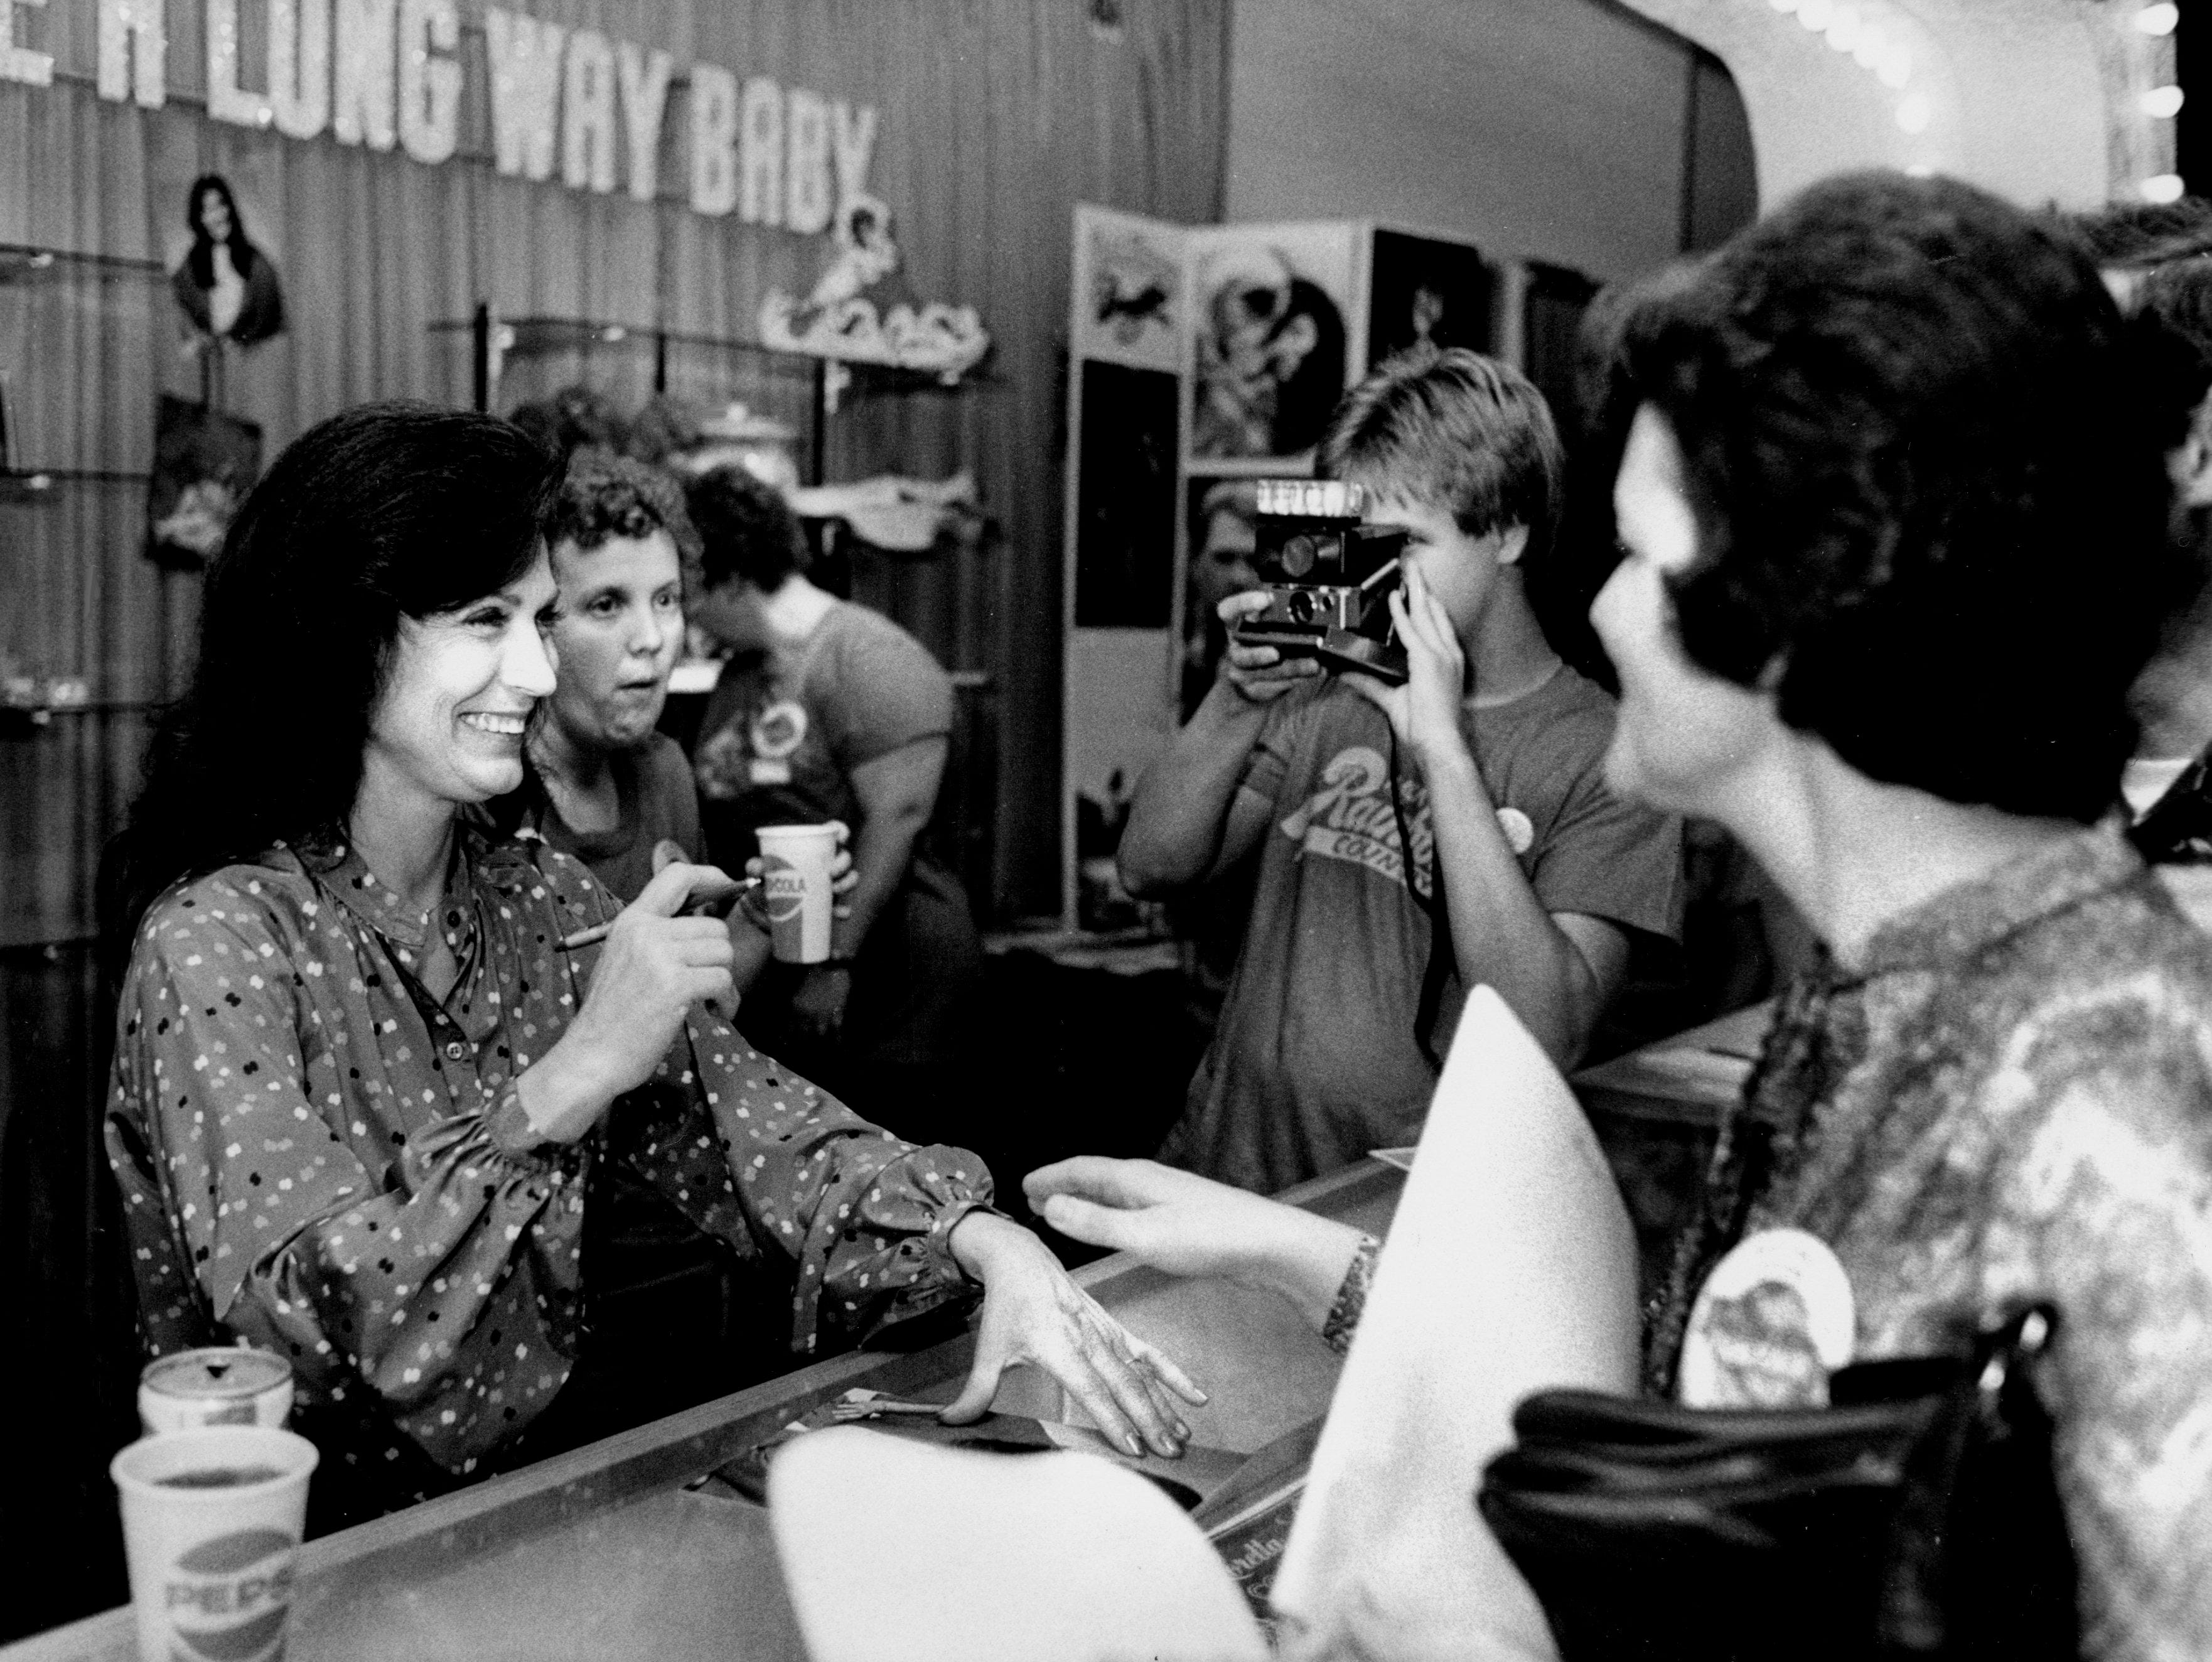 Loretta Lynn, left, greets some of the many fans who waited to see her for more than two hours during Fan Fair at the Municipal Auditorium June 7, 1979.